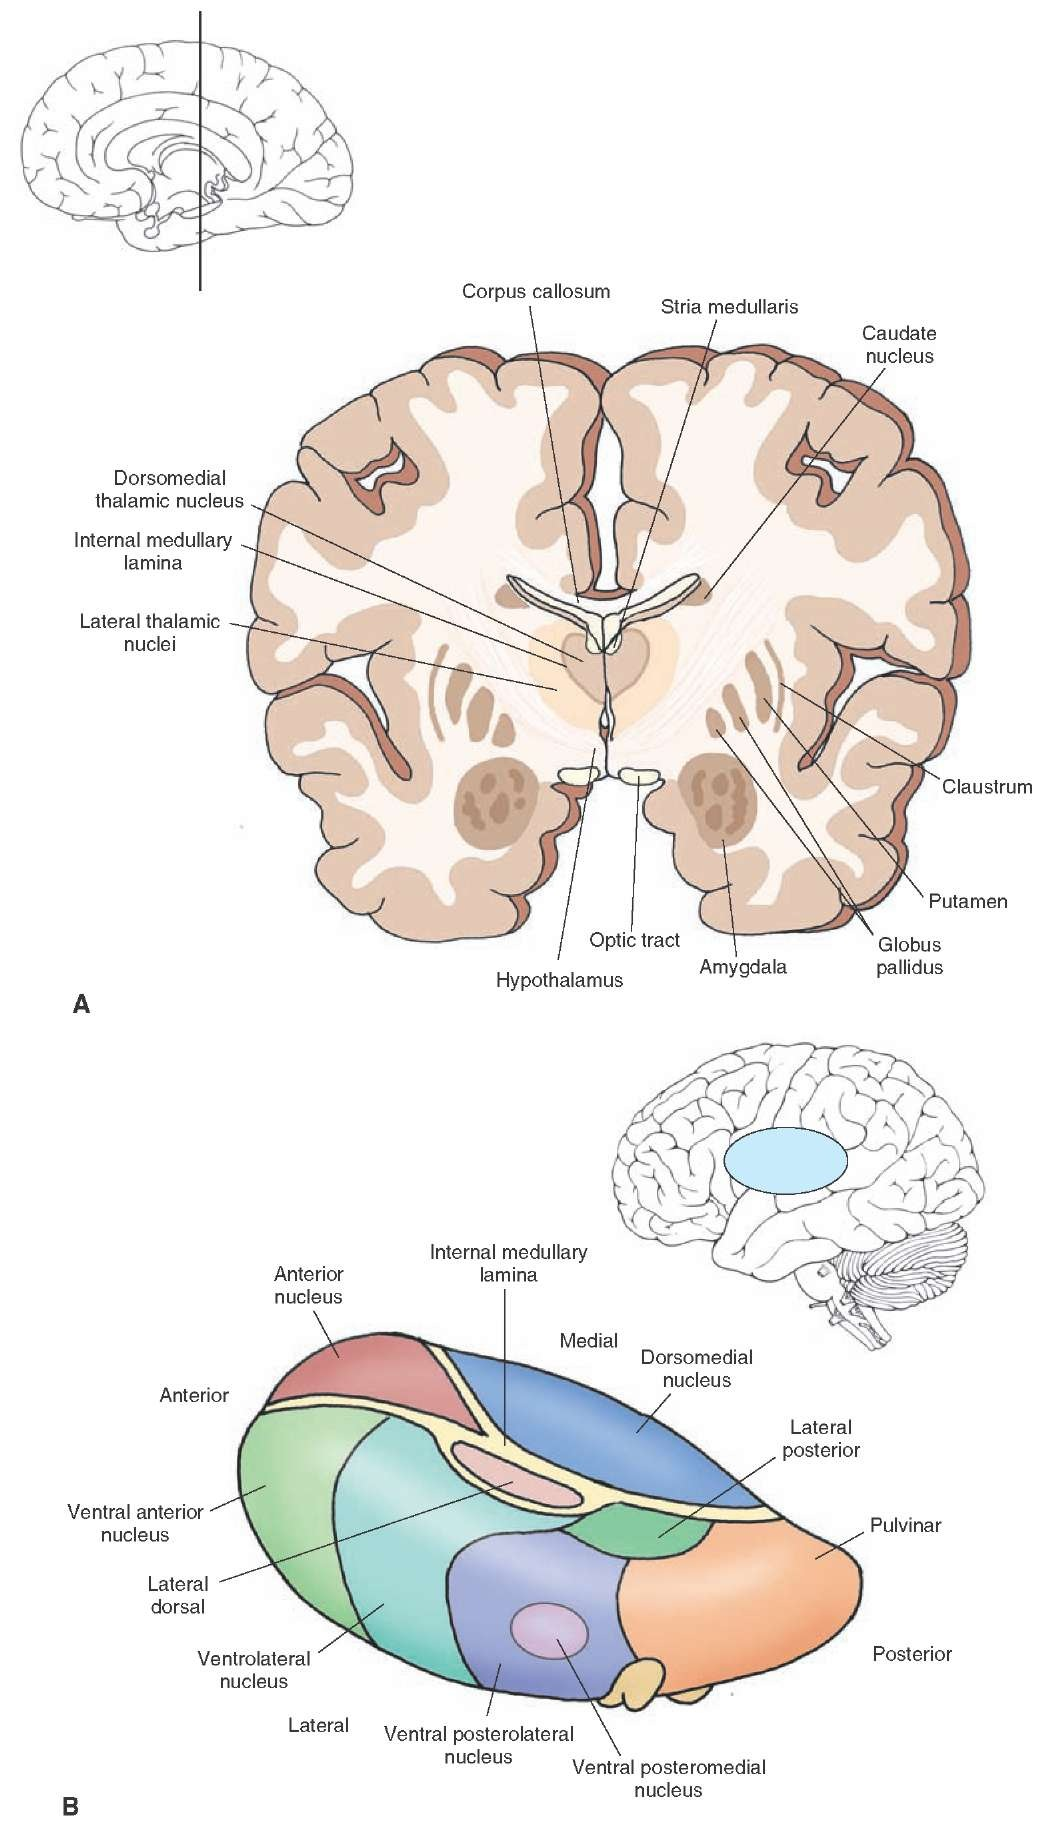 The Forebrain (Organization of the Central Nervous System) Part 1